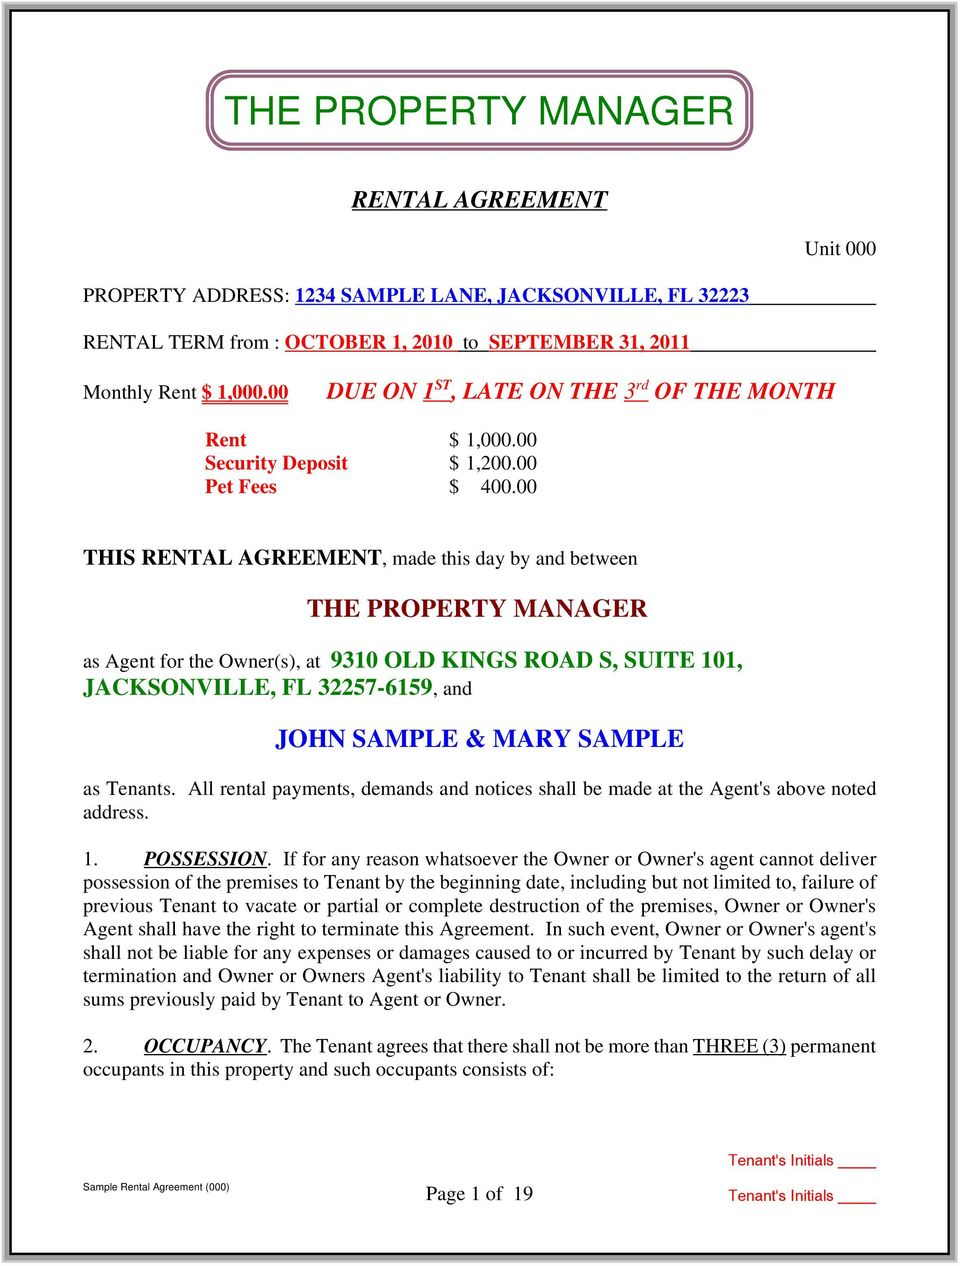 00 THIS RENTAL AGREEMENT, made this day by and between THE PROPERTY MANAGER as Agent for the Owner(s), at 9310 OLD KINGS ROAD S, SUITE 101, JACKSONVILLE, FL 32257-6159, and JOHN SAMPLE & MARY SAMPLE